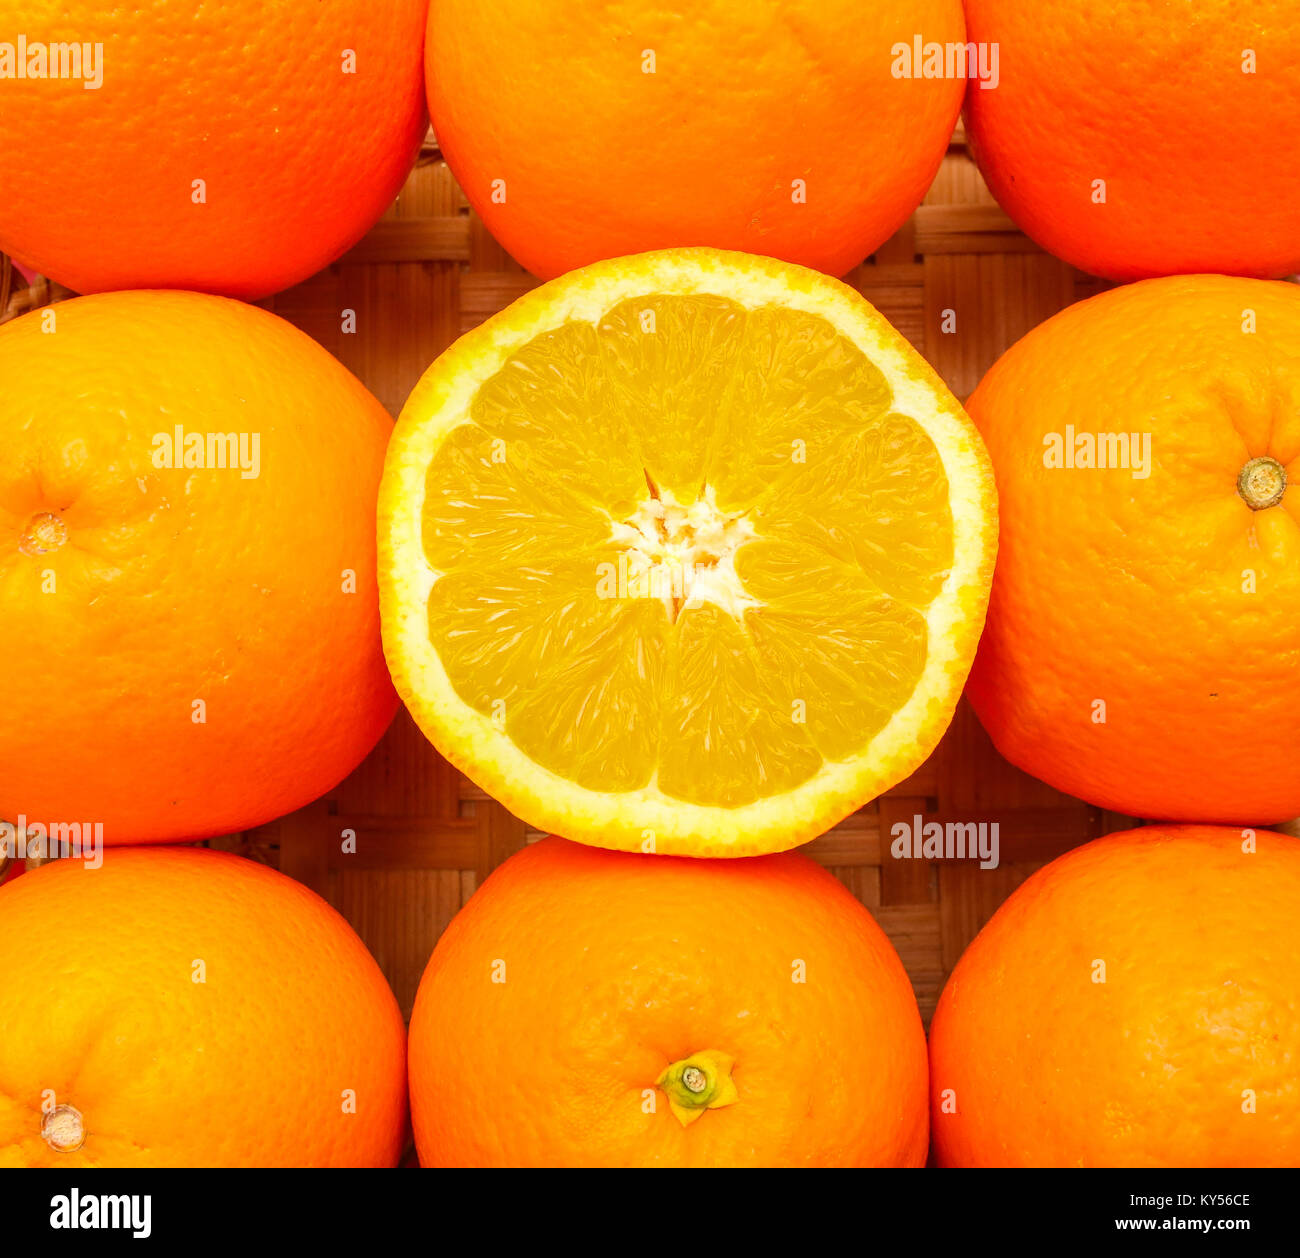 Half of an fresh orange in middle of other oranges - Stock Image